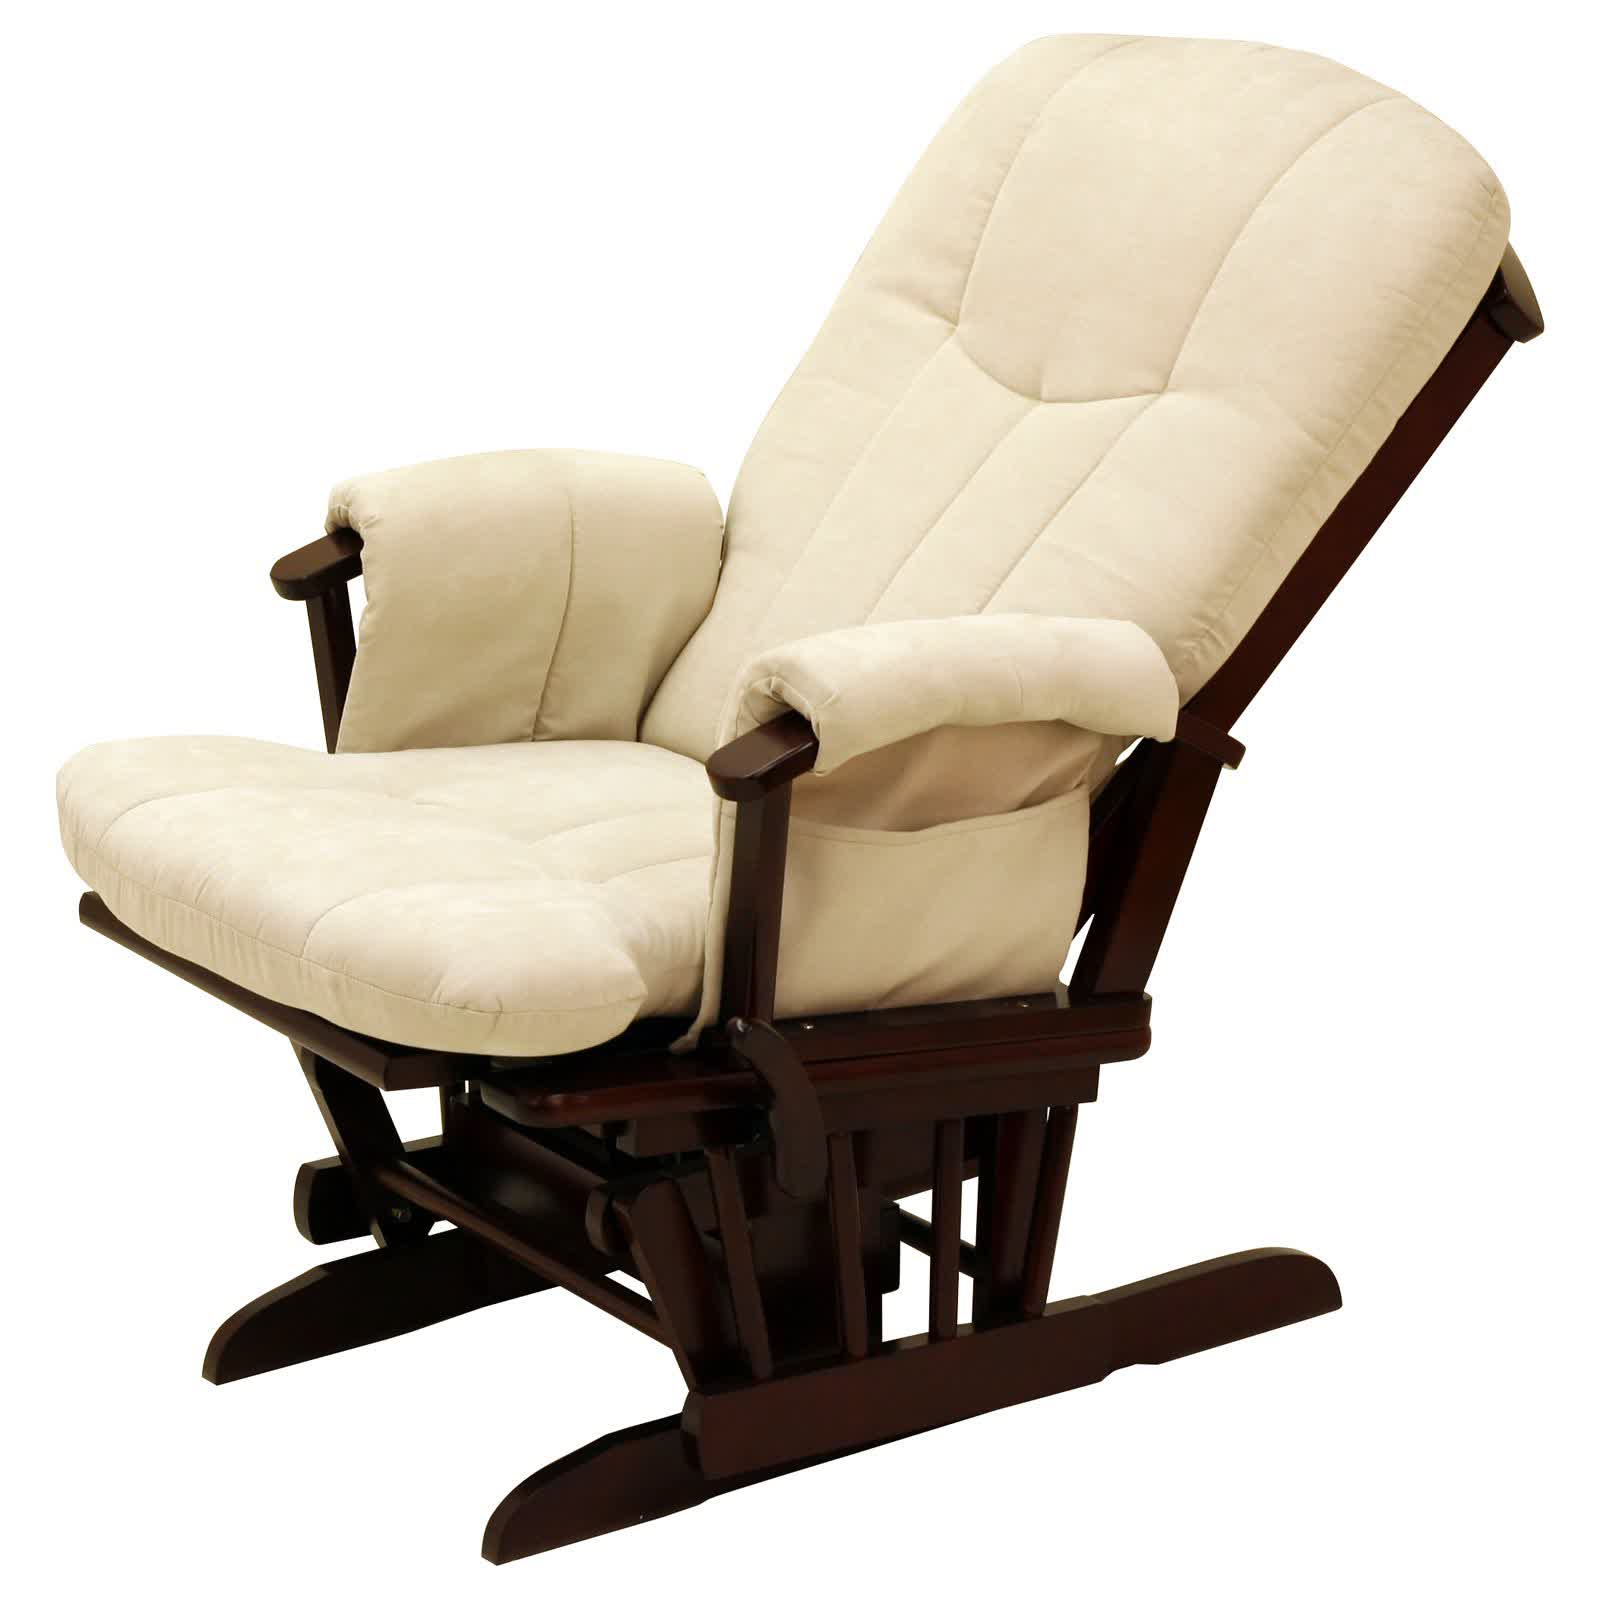 Image of: Best Rocker Recliner Nursery